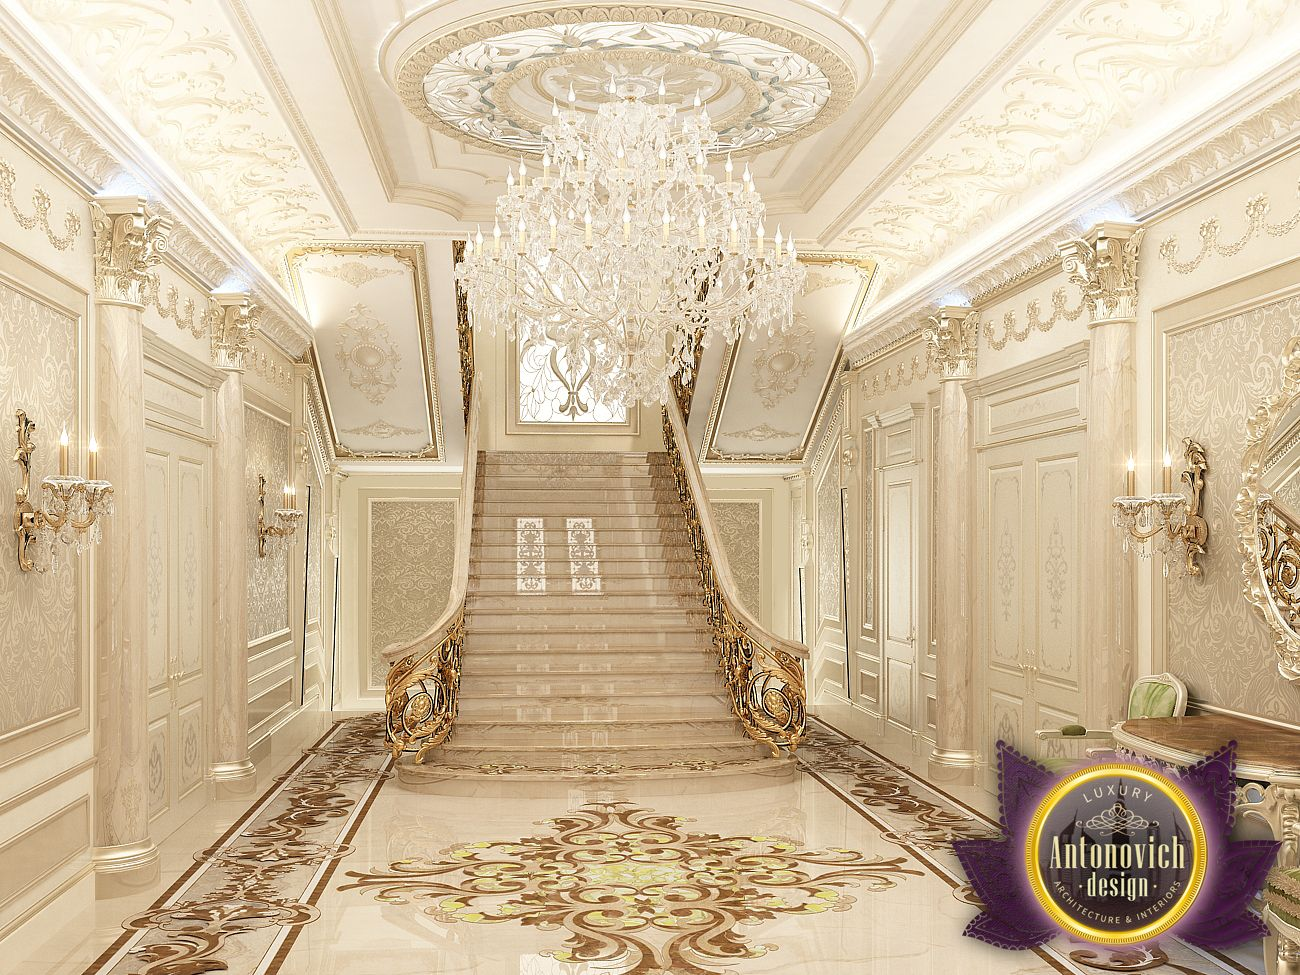 Luxury antonovich design uae dream interior of luxury - Decor oriental design interieur luxe antonovich ...